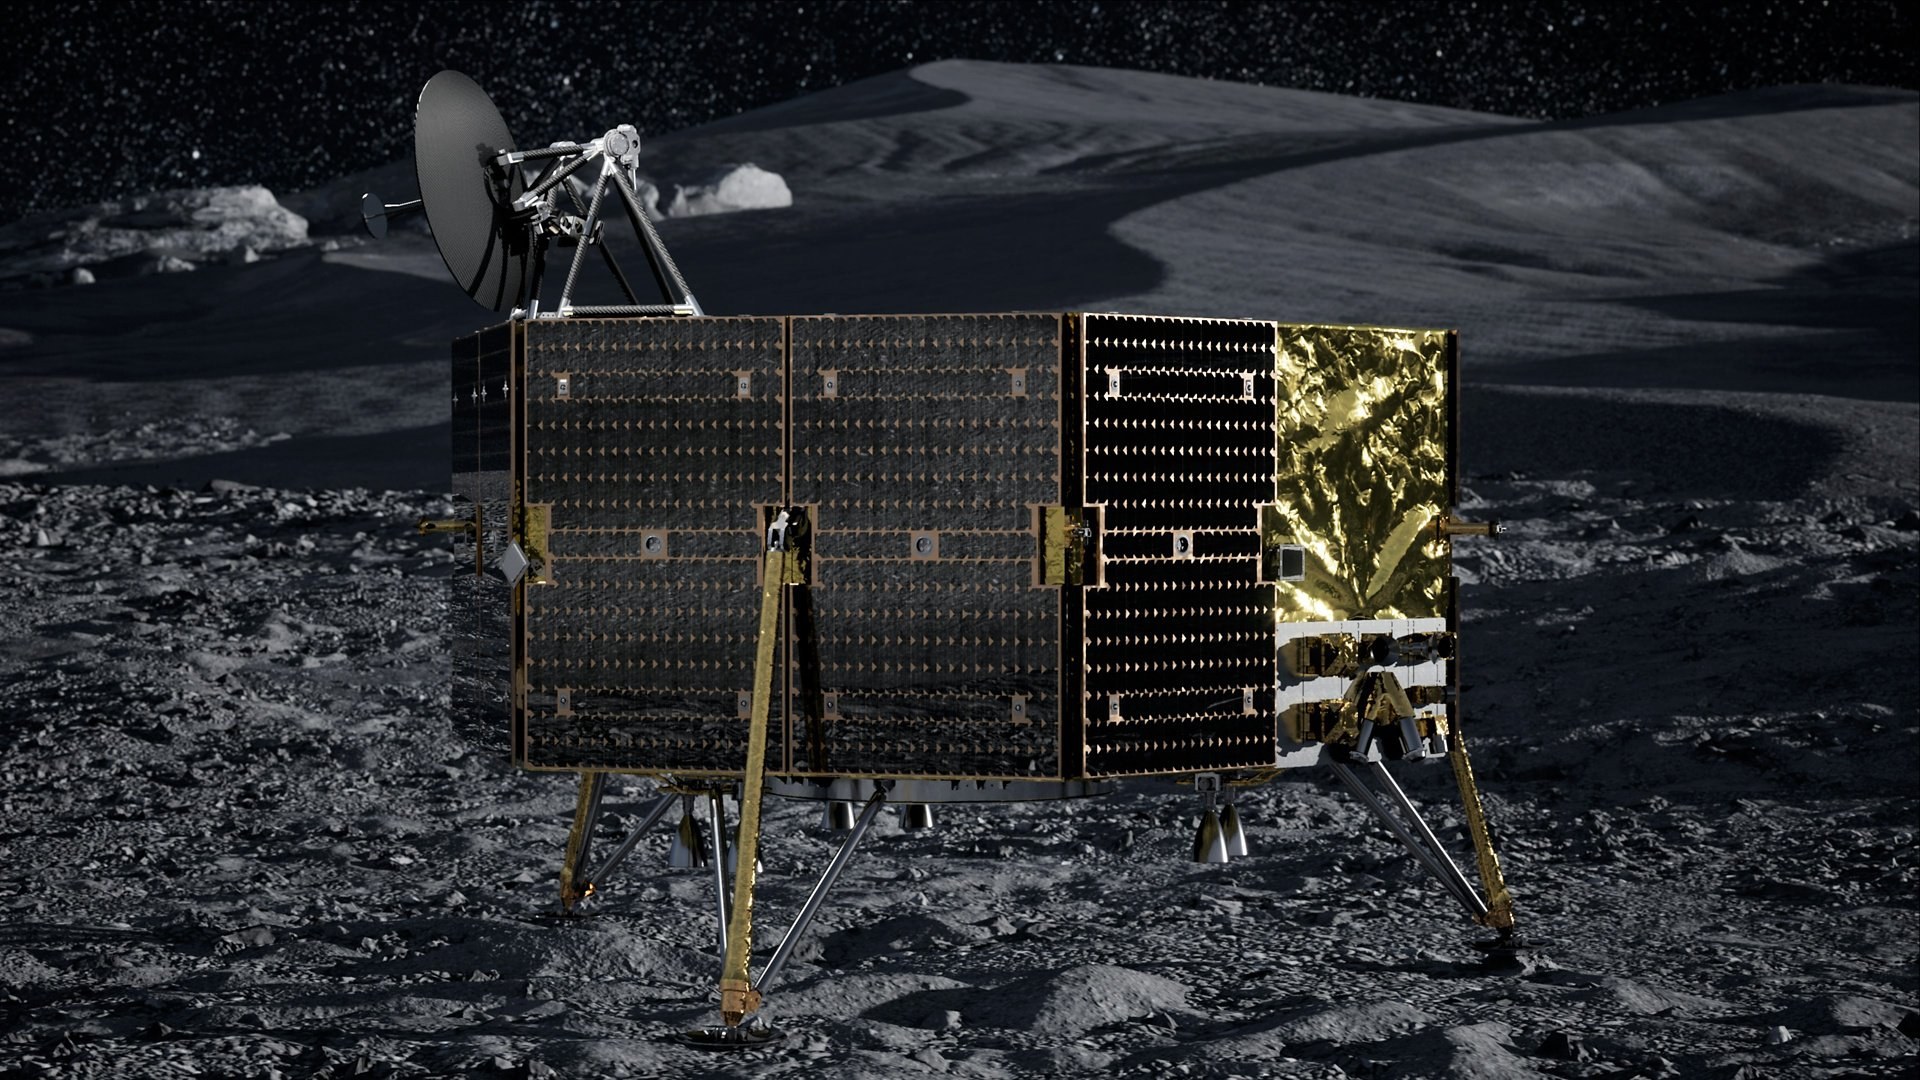 Today, Airbus announced that its Sparkwing solar panels were selected by USA-based Masten Space Systems for their XL-1 lunar lander. In 2023, the XL-1 spacecraft will land at the lunar South Pole as part of NASA's Commercial Lunar Payload Services program. XL-1 will be equipped with six body-mounted Sparkwing solar panels, to be delivered next year, to charge the vehicle's power system during transition to the Moon as well as during operations on the Moon's surface.